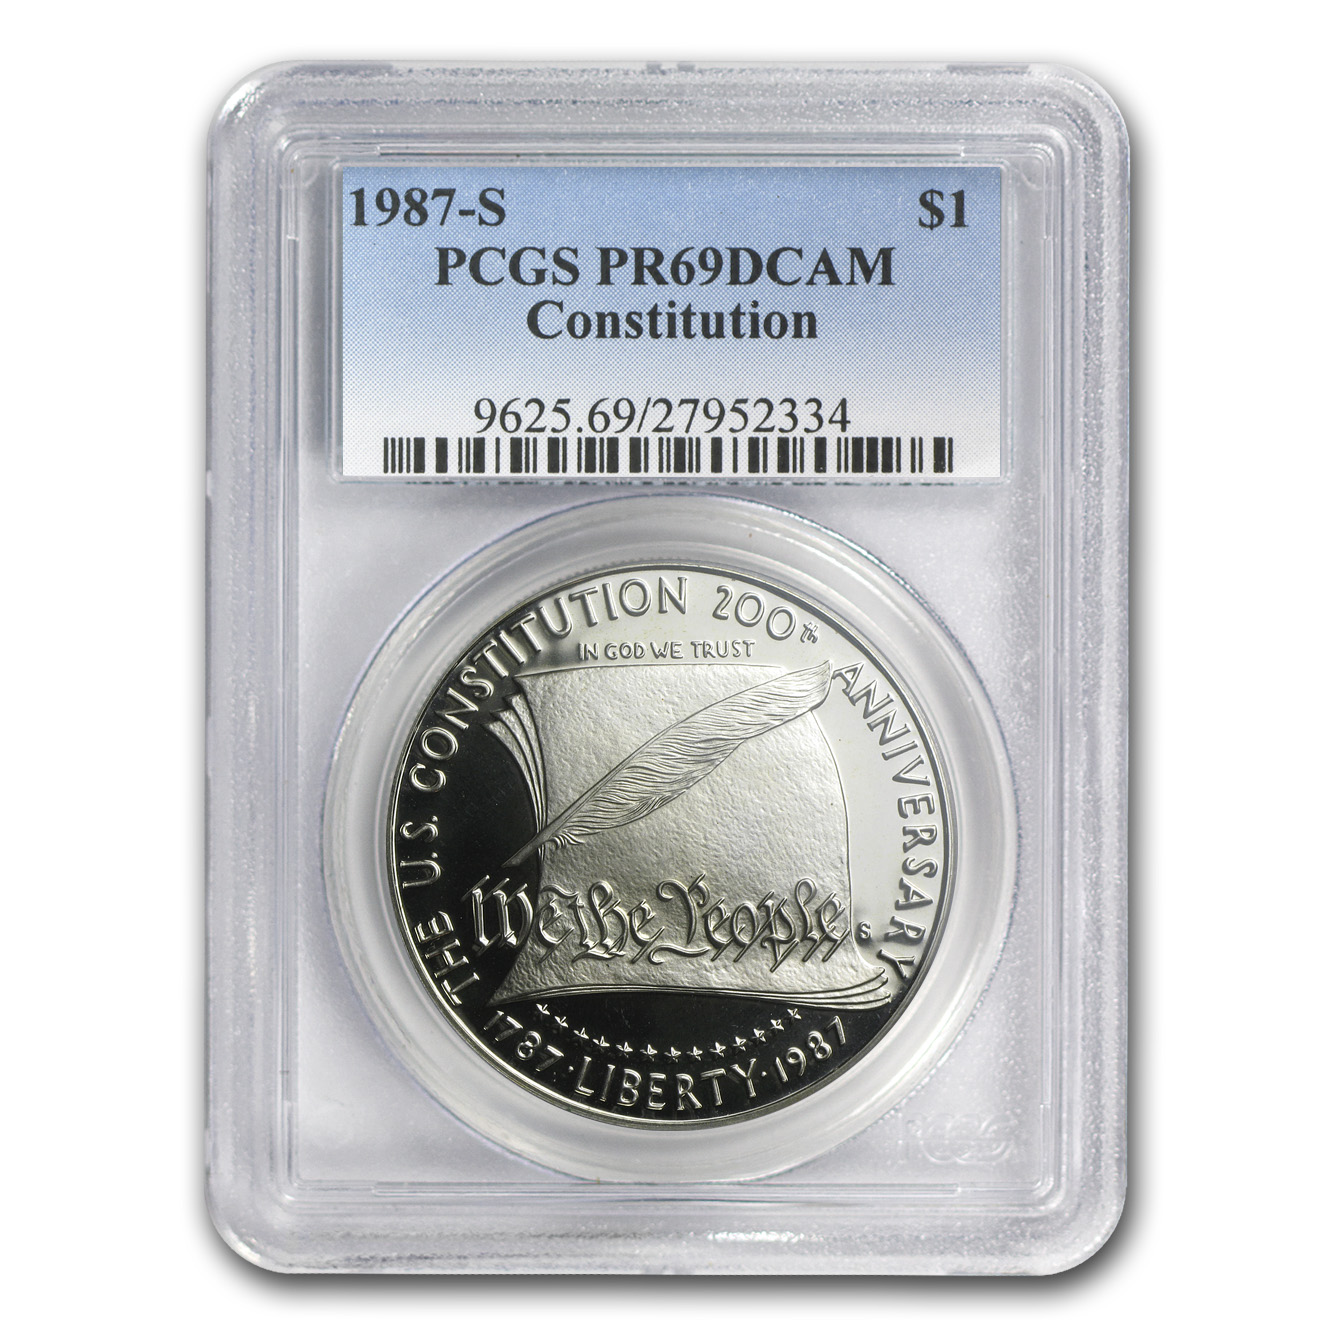 U.S. Mint $1 Silver Commemorative MS/PR-69 PCGS